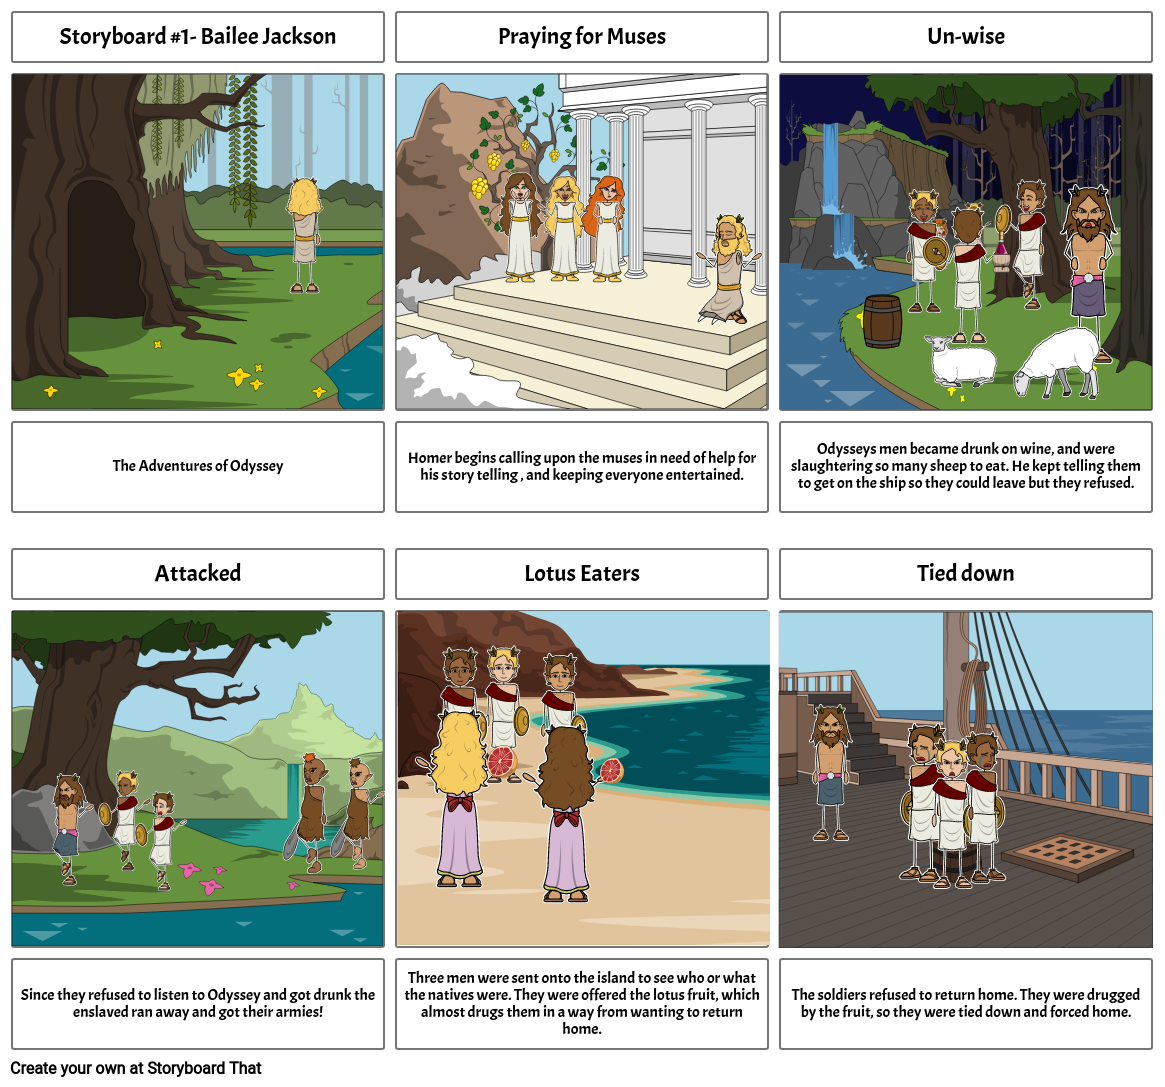 Storyboard #1-The adventures of Odyssey